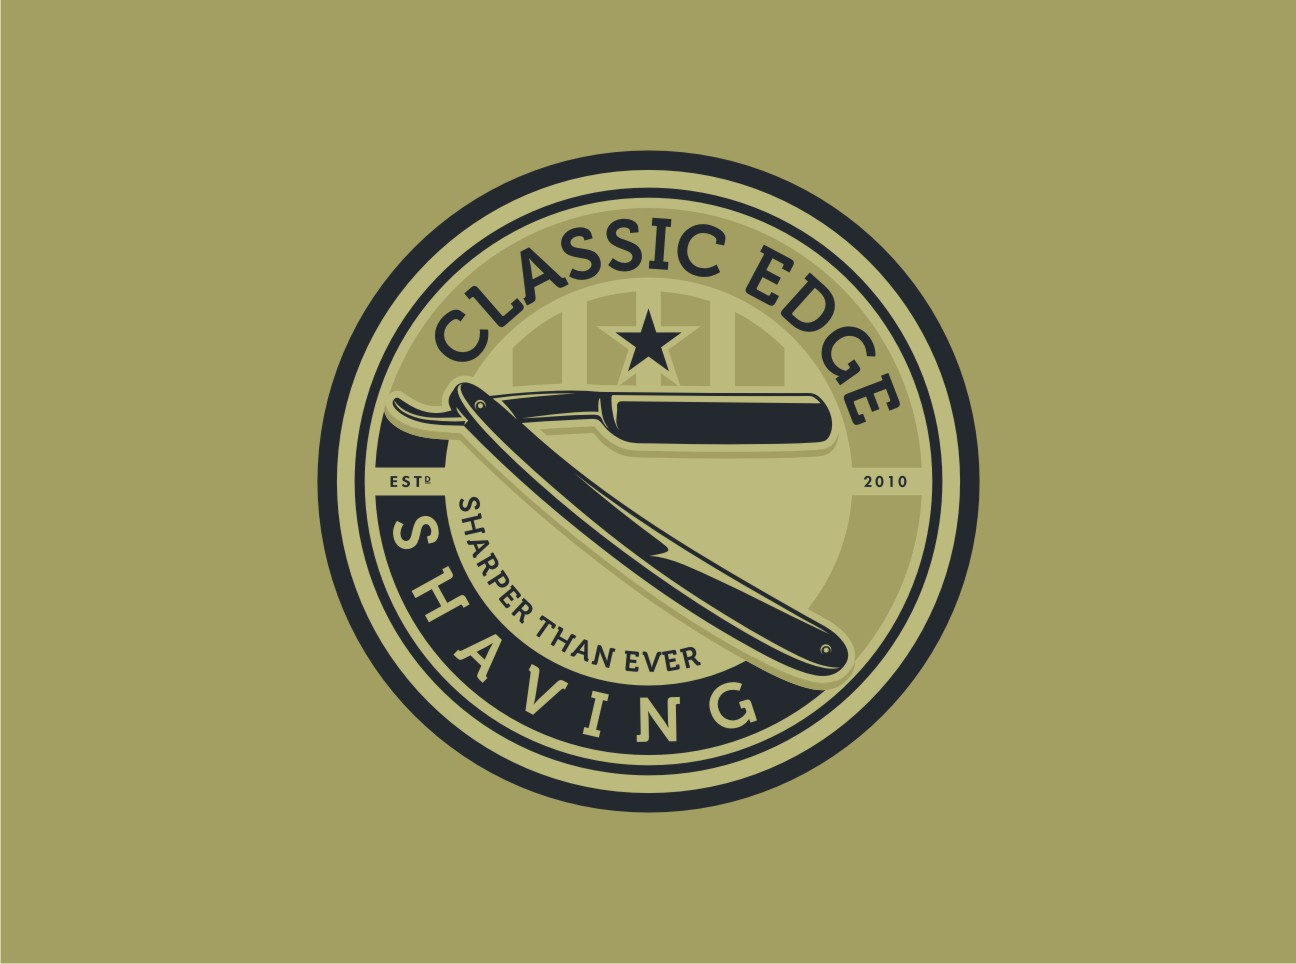 Help Classic Edge Shaving with a new logo